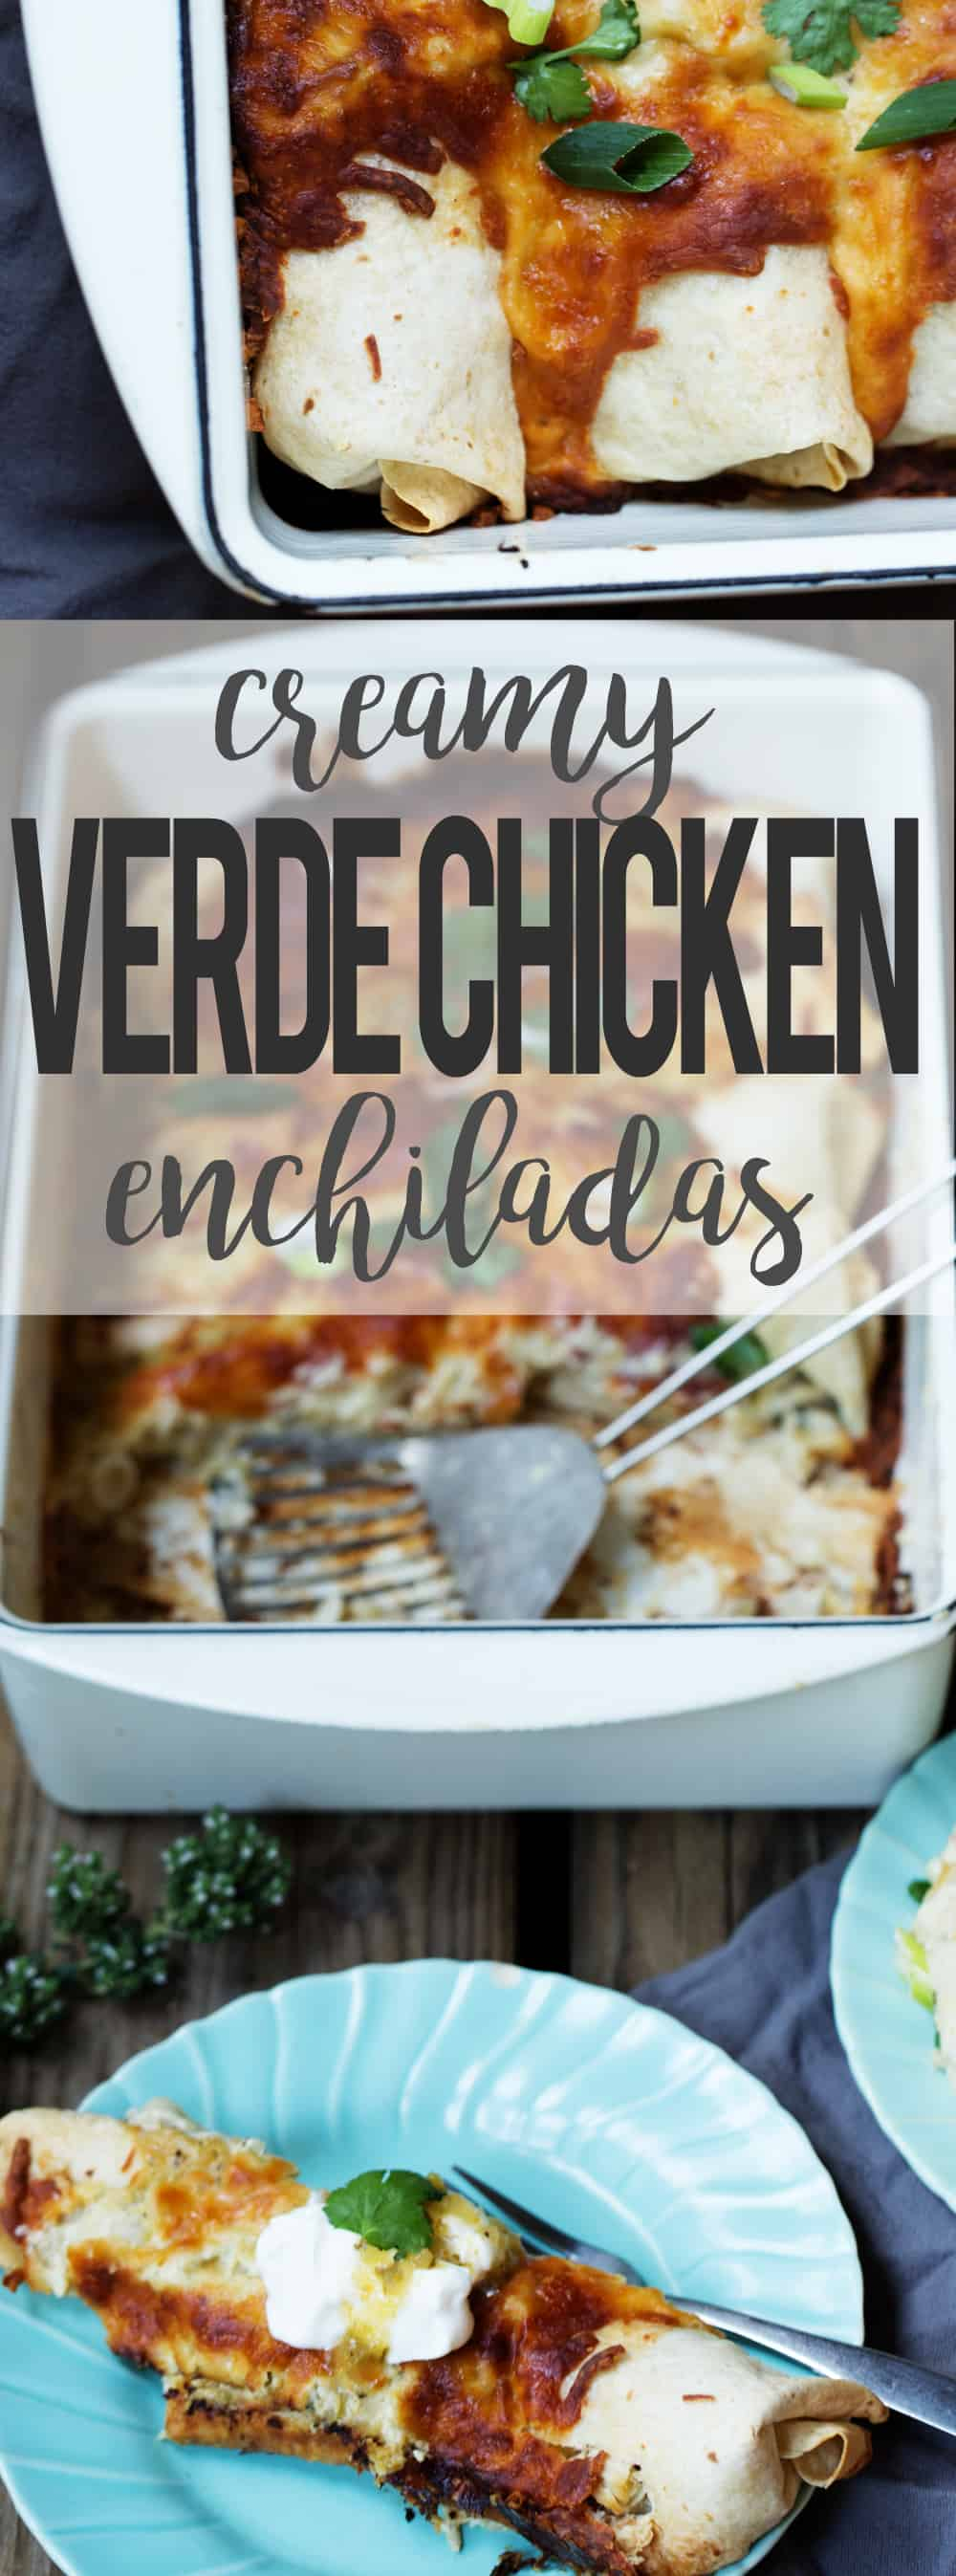 Creamy Chile Verde Chicken Enchiladas - easy meal for a crowd #MakeGameTimeSaucy